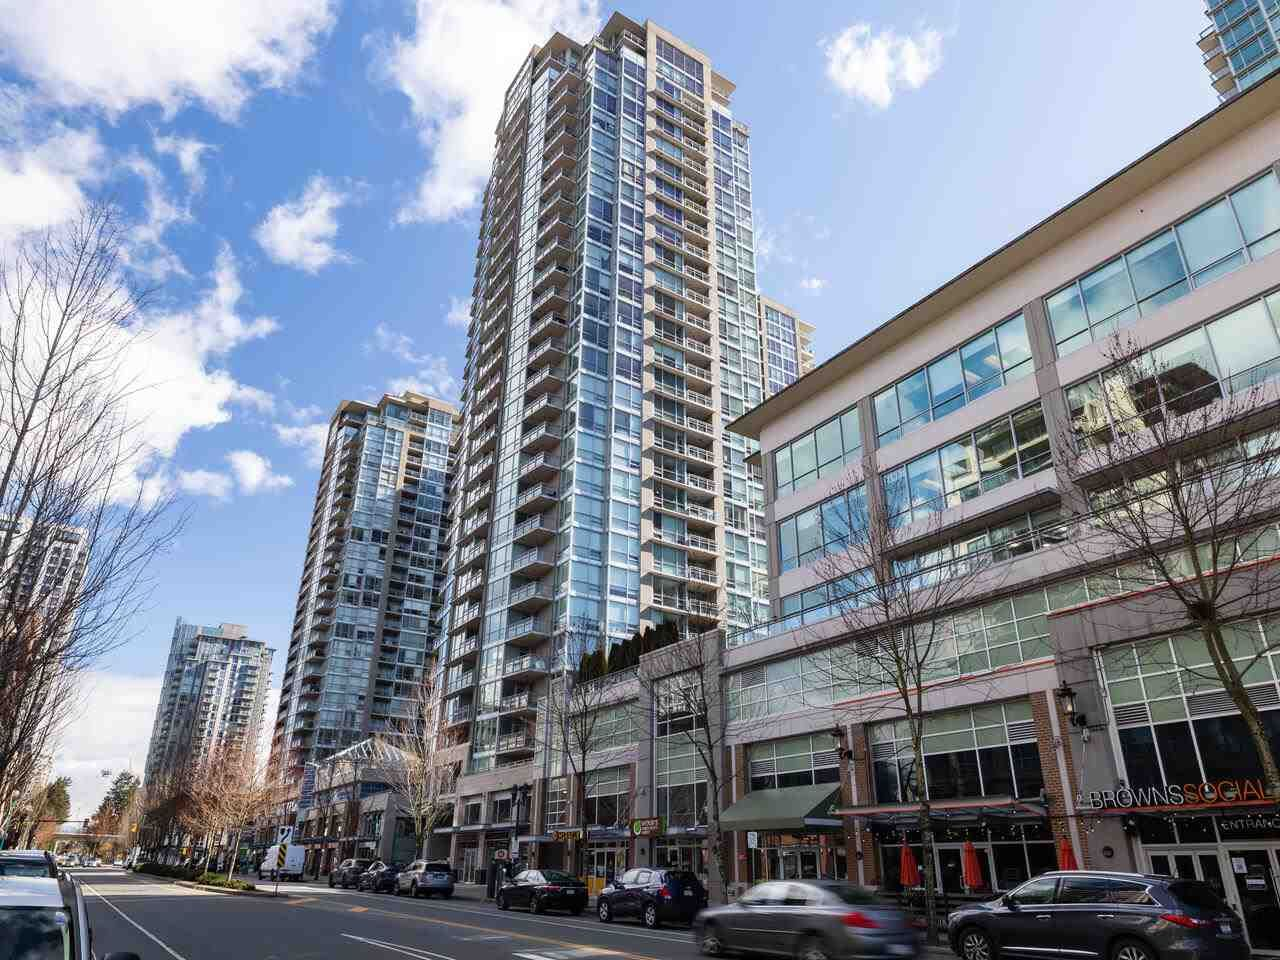 """Main Photo: 2301 2968 GLEN Drive in Coquitlam: North Coquitlam Condo for sale in """"Grand central II"""" : MLS®# R2552070"""